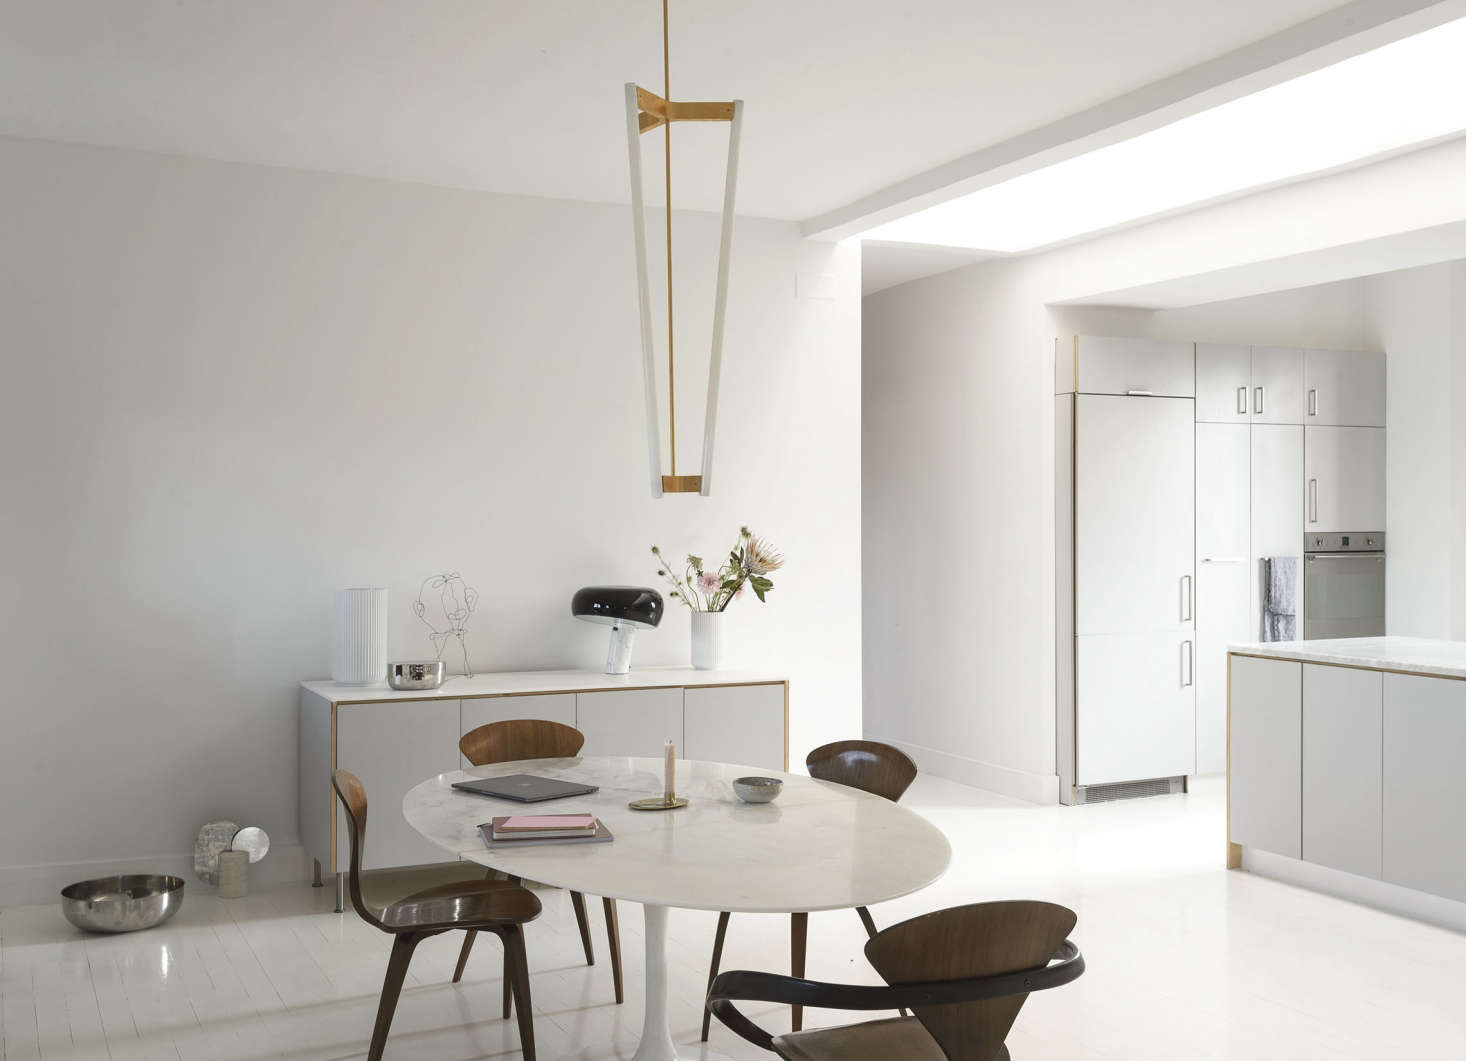 """The black-and-white light on the sideboard is the FlosSnoopy Table Lamp (Camilla purchased it in Italy and checked it with her luggage). The pendant light is British designer Michael Anastassiades'sTube Chandelier (""""He's a genius. I checked that too—I have a lamp fetish""""). The silver bowls are Georg Jensen designs that move around—the large one was a wedding gift from Peder's parents."""